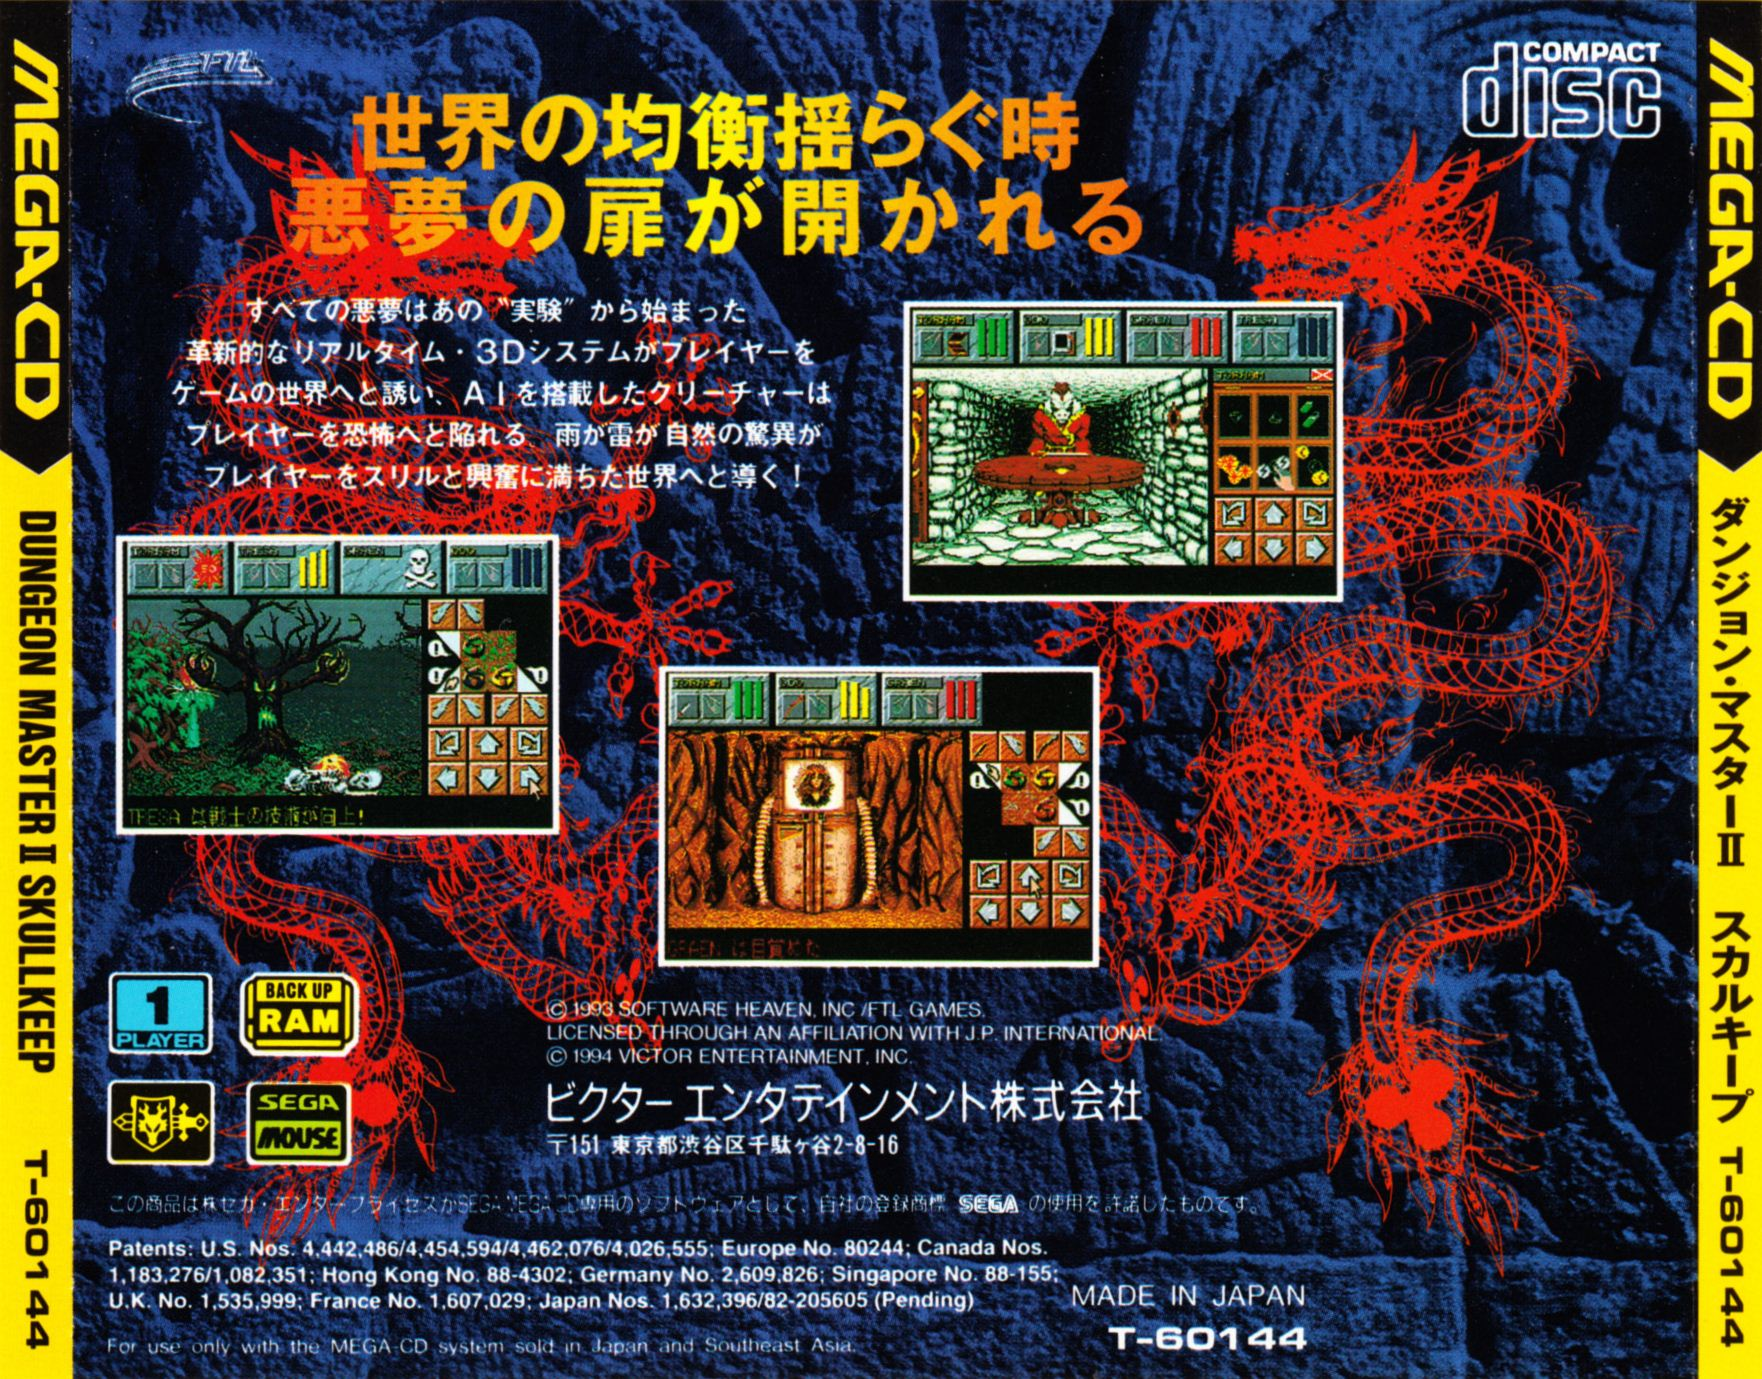 Game - Dungeon Master II - JP - Mega CD - Back Card - Front - Scan